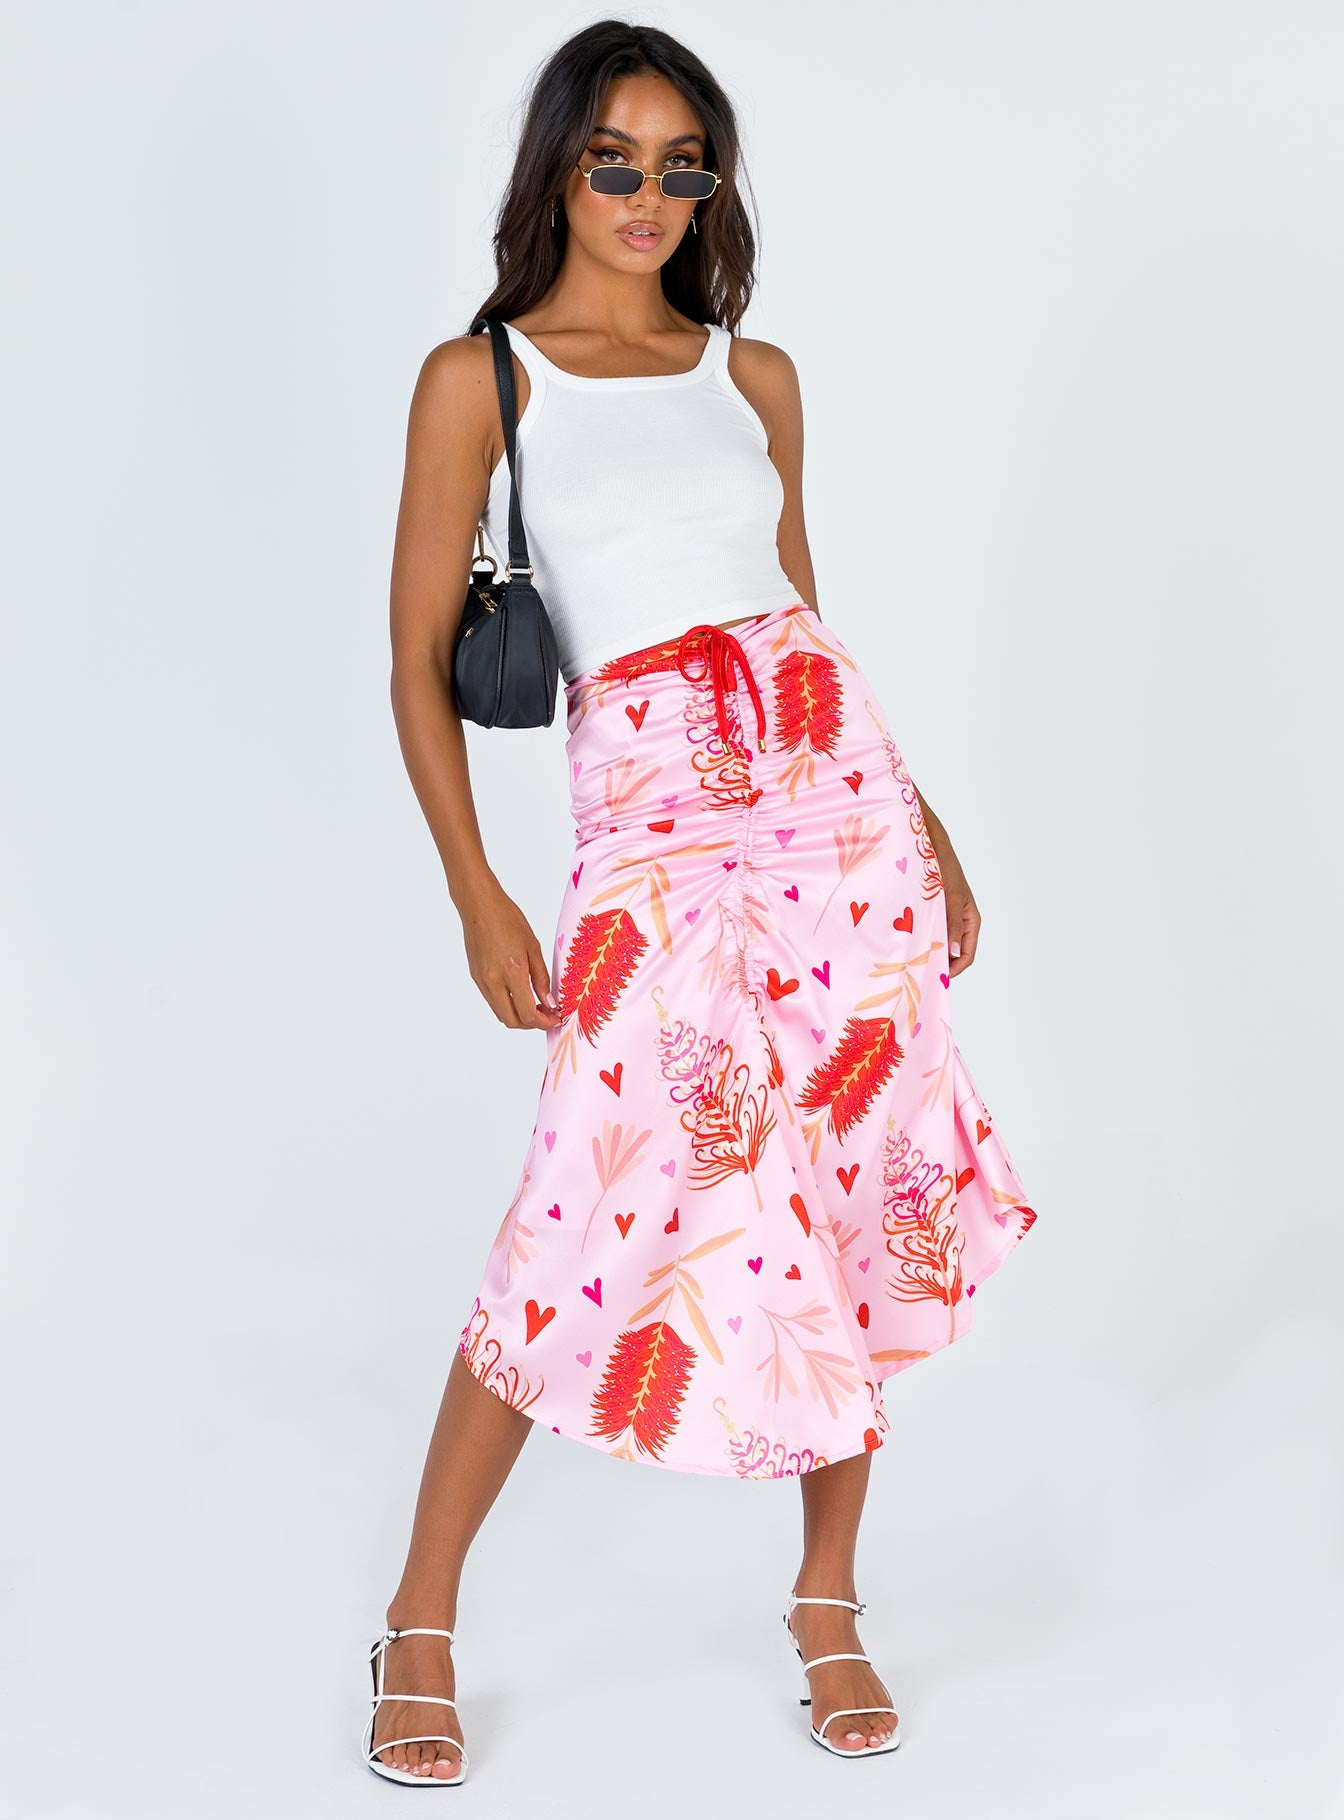 Myrtle Magic Midi Skirt